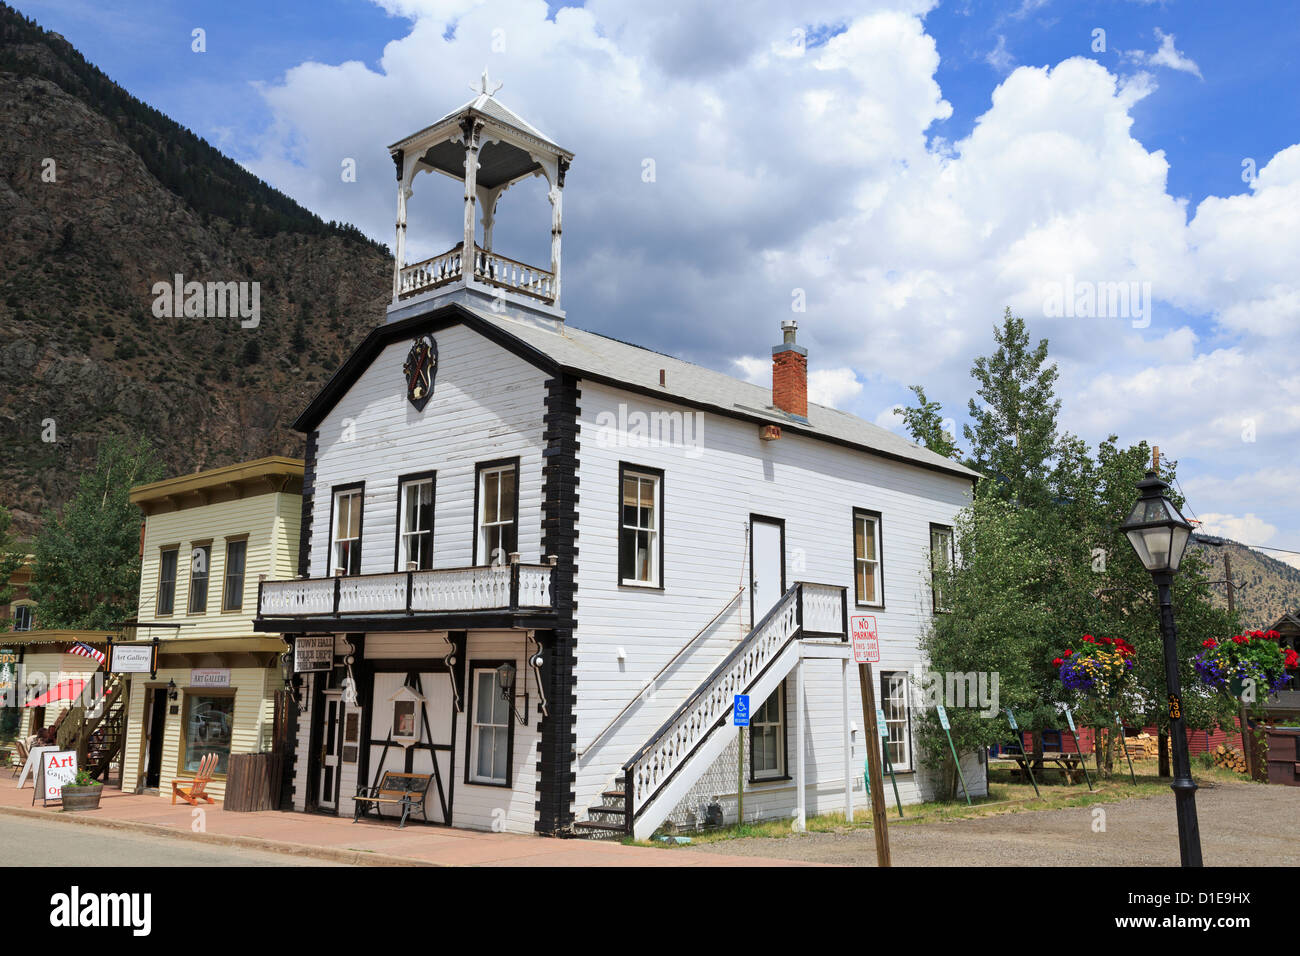 Town Hall, Georgetown, Colorado, United States of America, North America - Stock Image